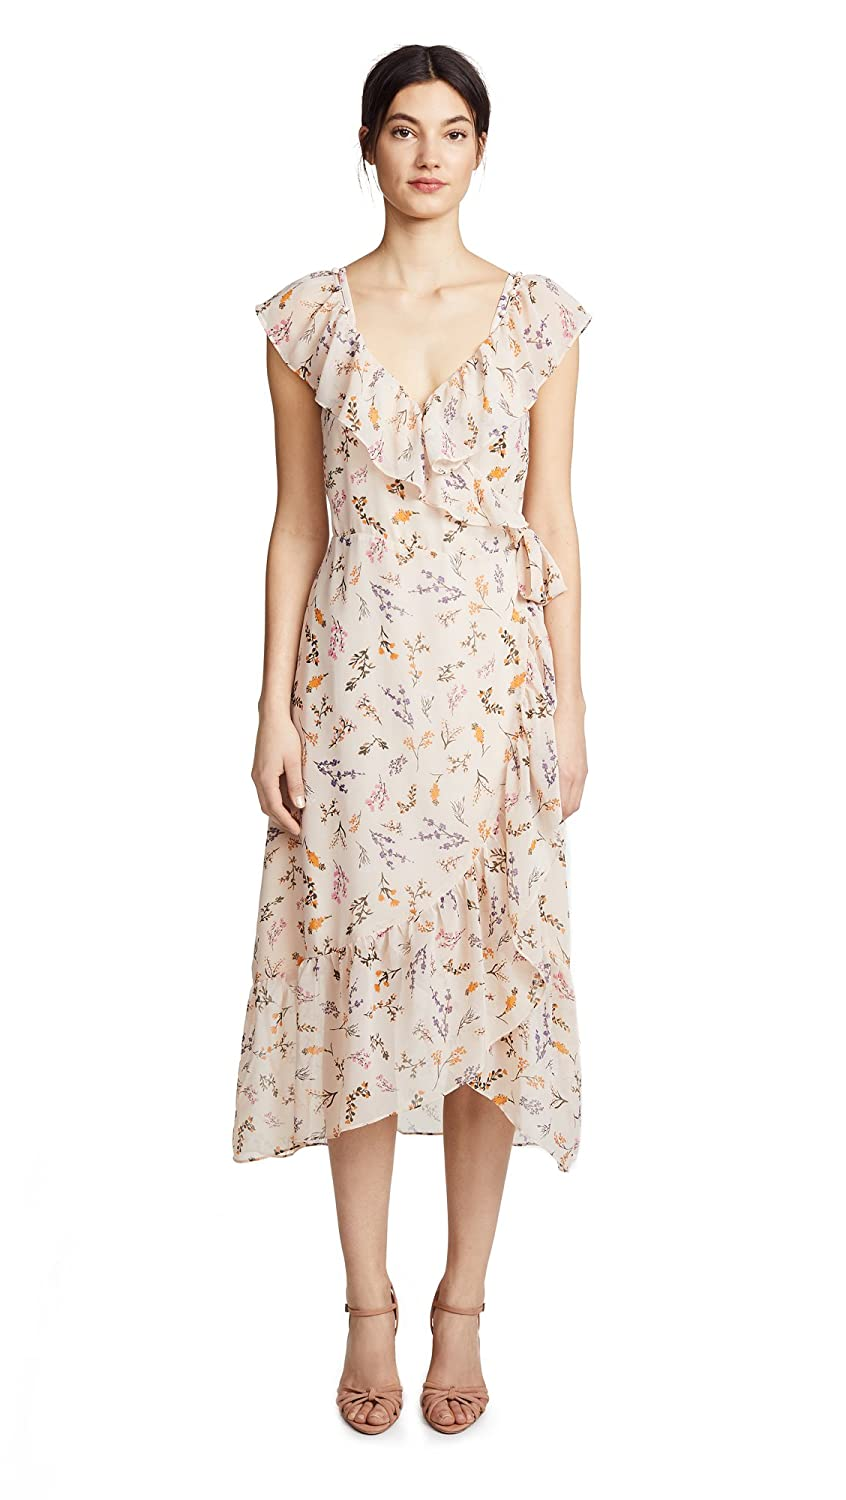 Rebecca Minkoff Womens Ruffled Floral Wrap Dress Pink XXS